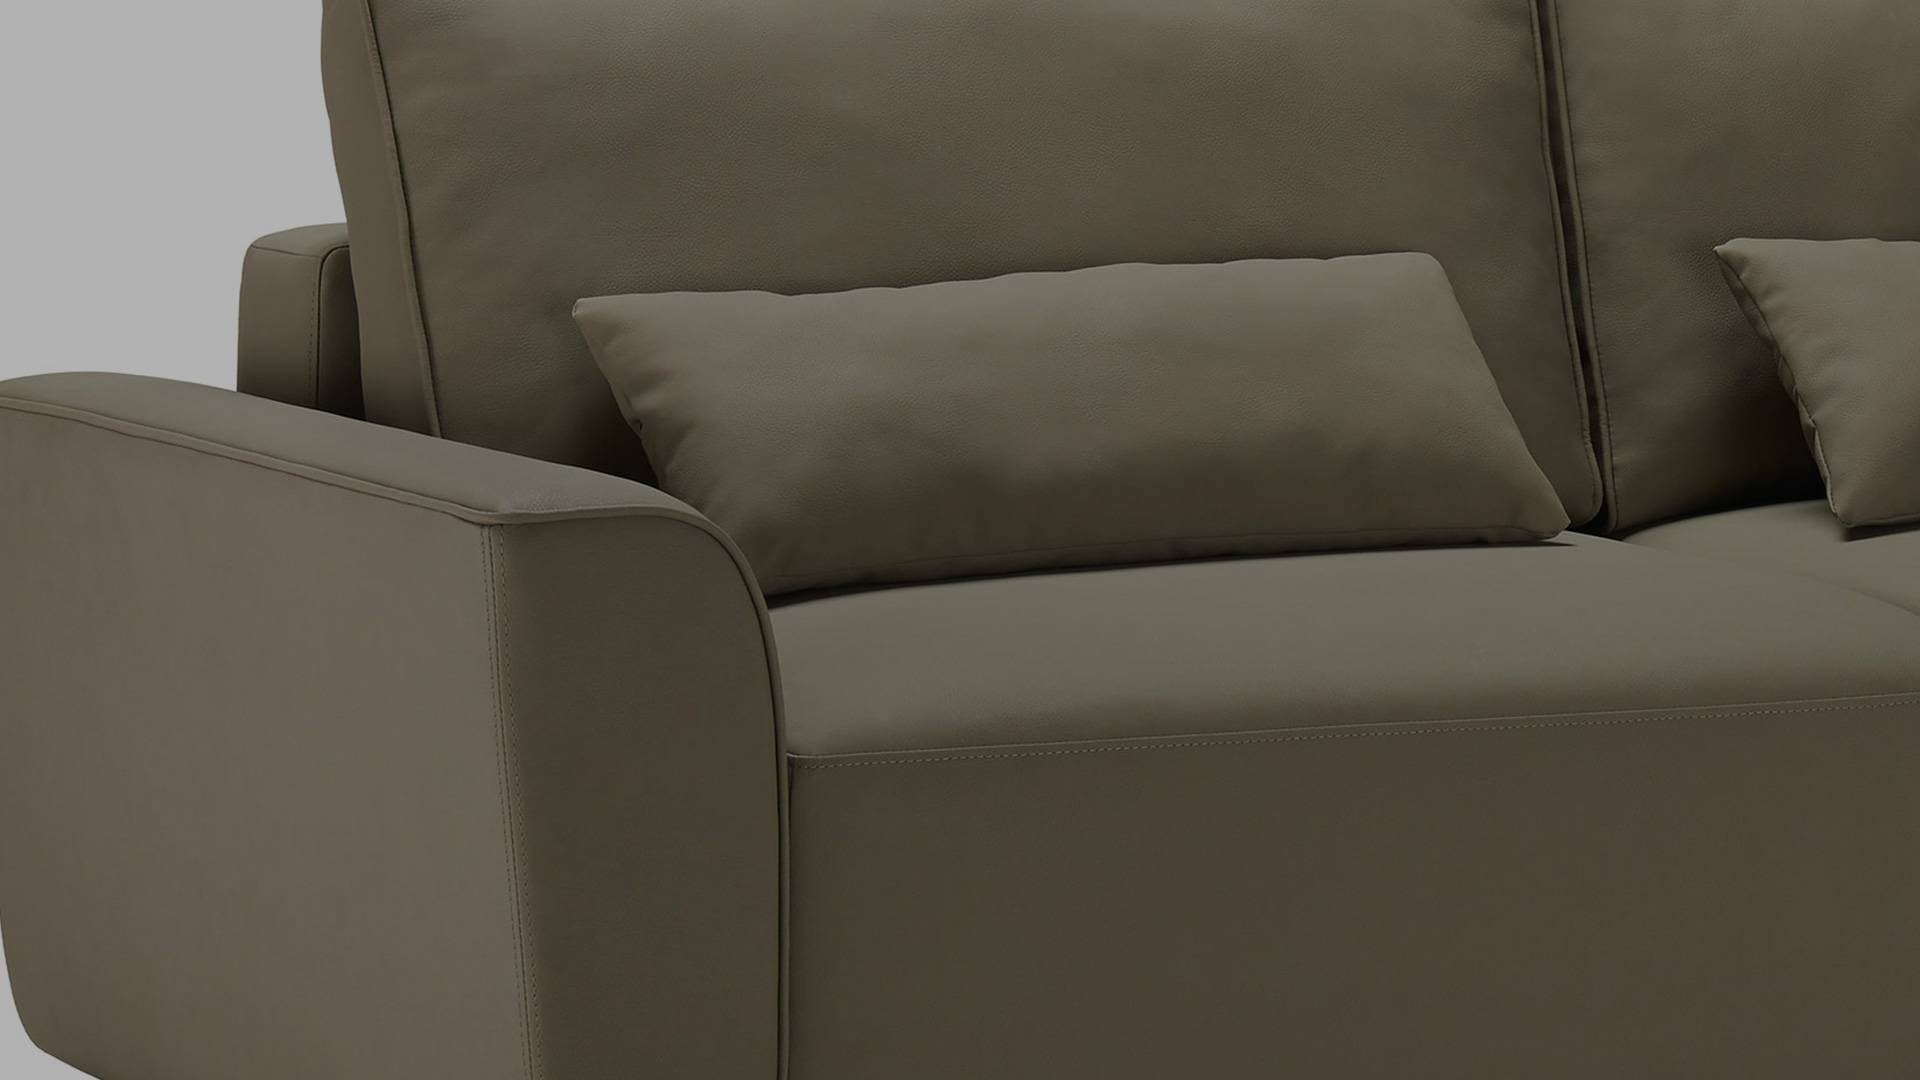 Sofa Beds Archives | Expand Furniture - Folding Tables, Smarter inside Comfortable Sofas And Chairs (Image 18 of 30)